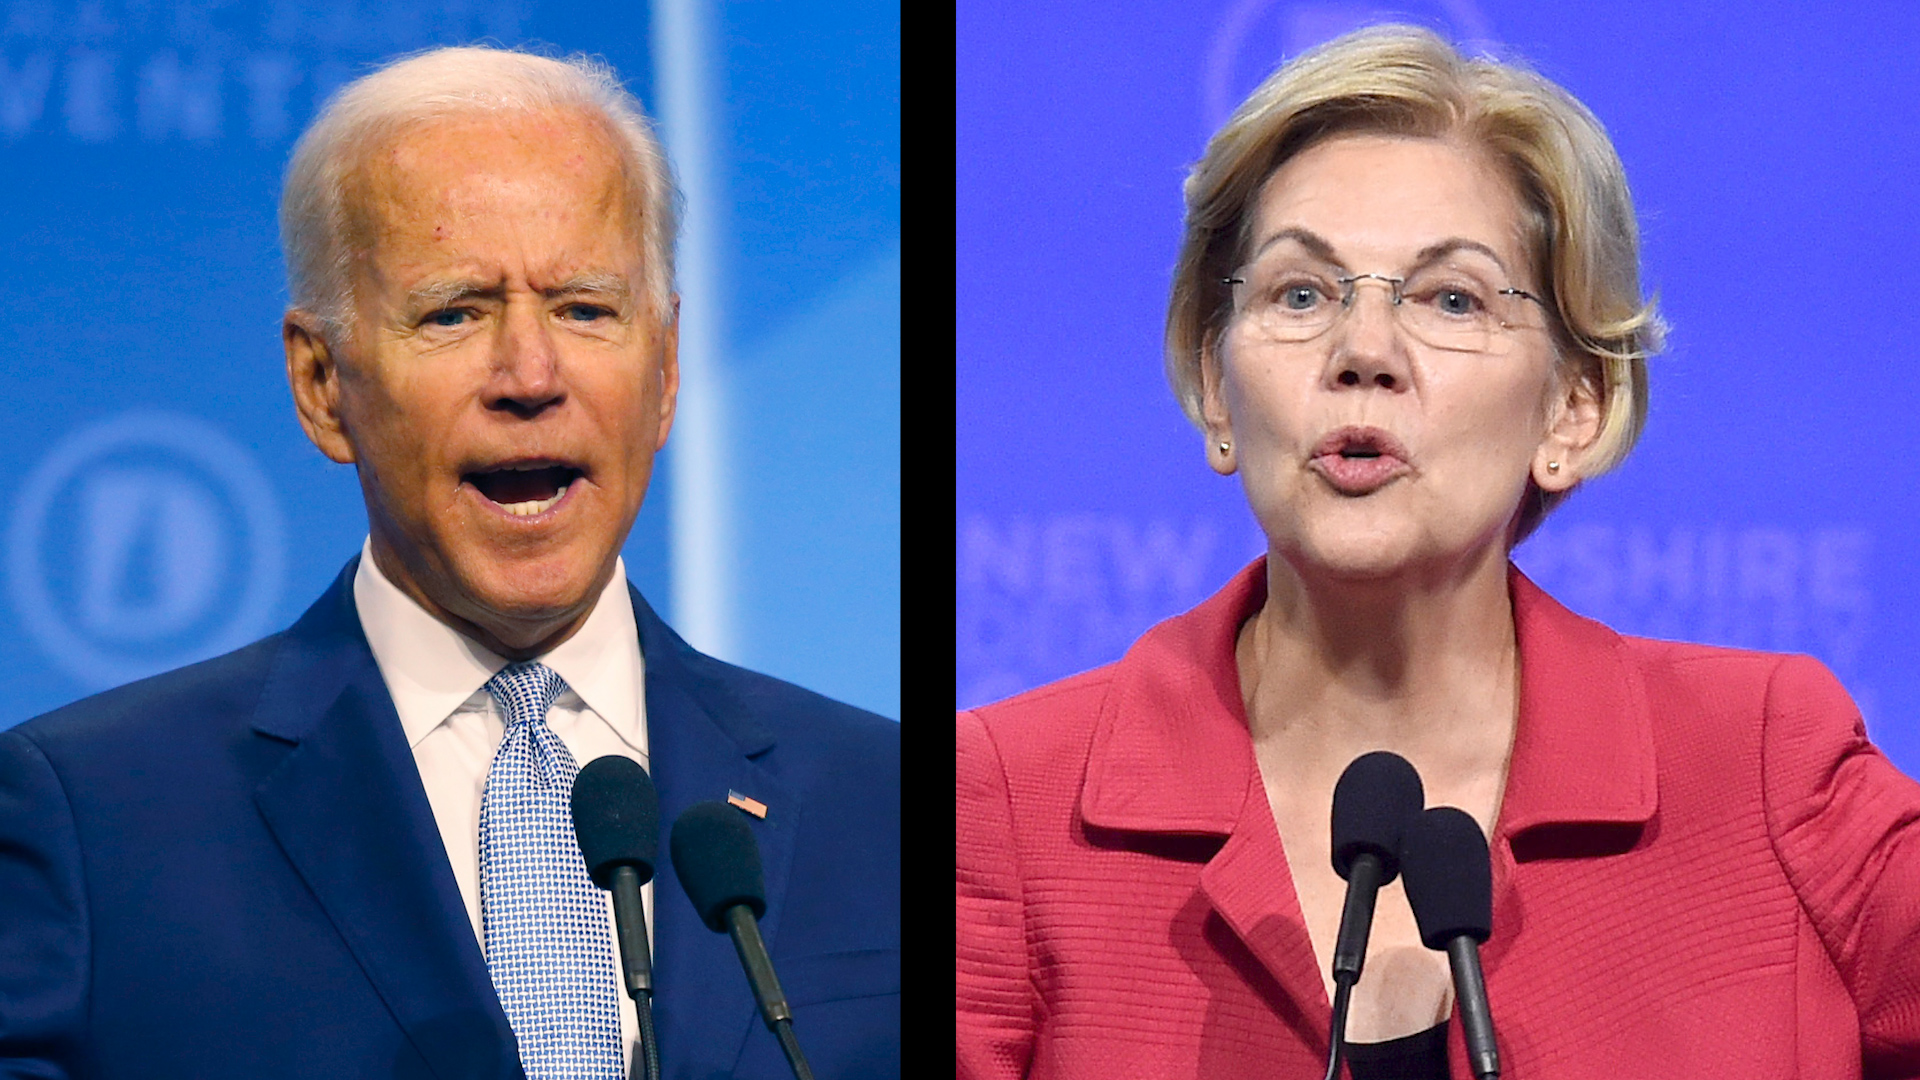 Biden and Warren, longtime frenemies, will finally meet in a debate chasing the biggest prize of all